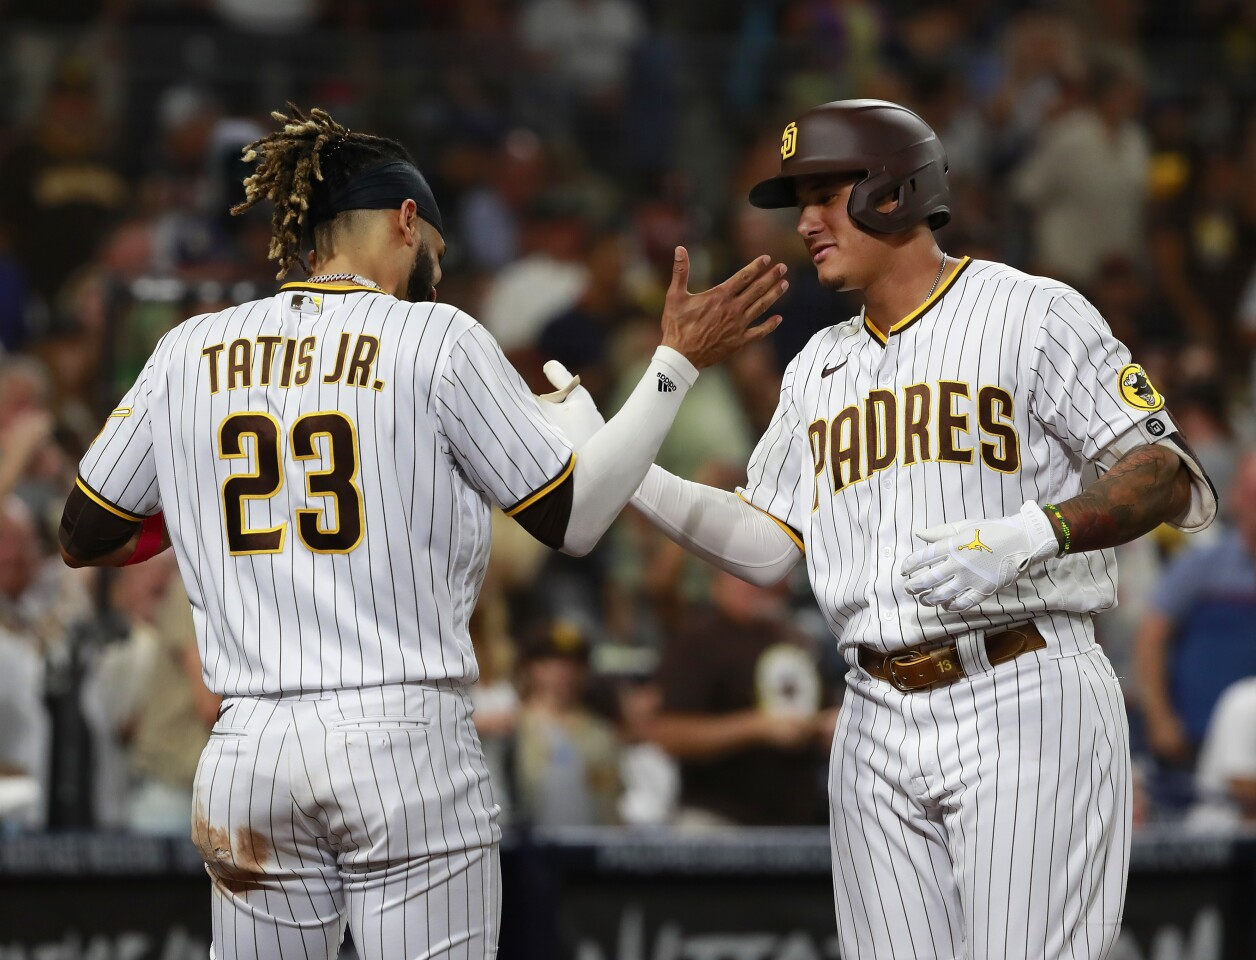 SAN DIEGO, CA - SEPTEMBER 21: San Diego Padres' Manny Machado celebrates with Fernando Tatis Jr. after hitting a home run in the third inning against the San Francisco Giants at Petco Park on Tuesday, Sept. 21, 2021 in San Diego, CA. (K.C. Alfred / The San Diego Union-Tribune)